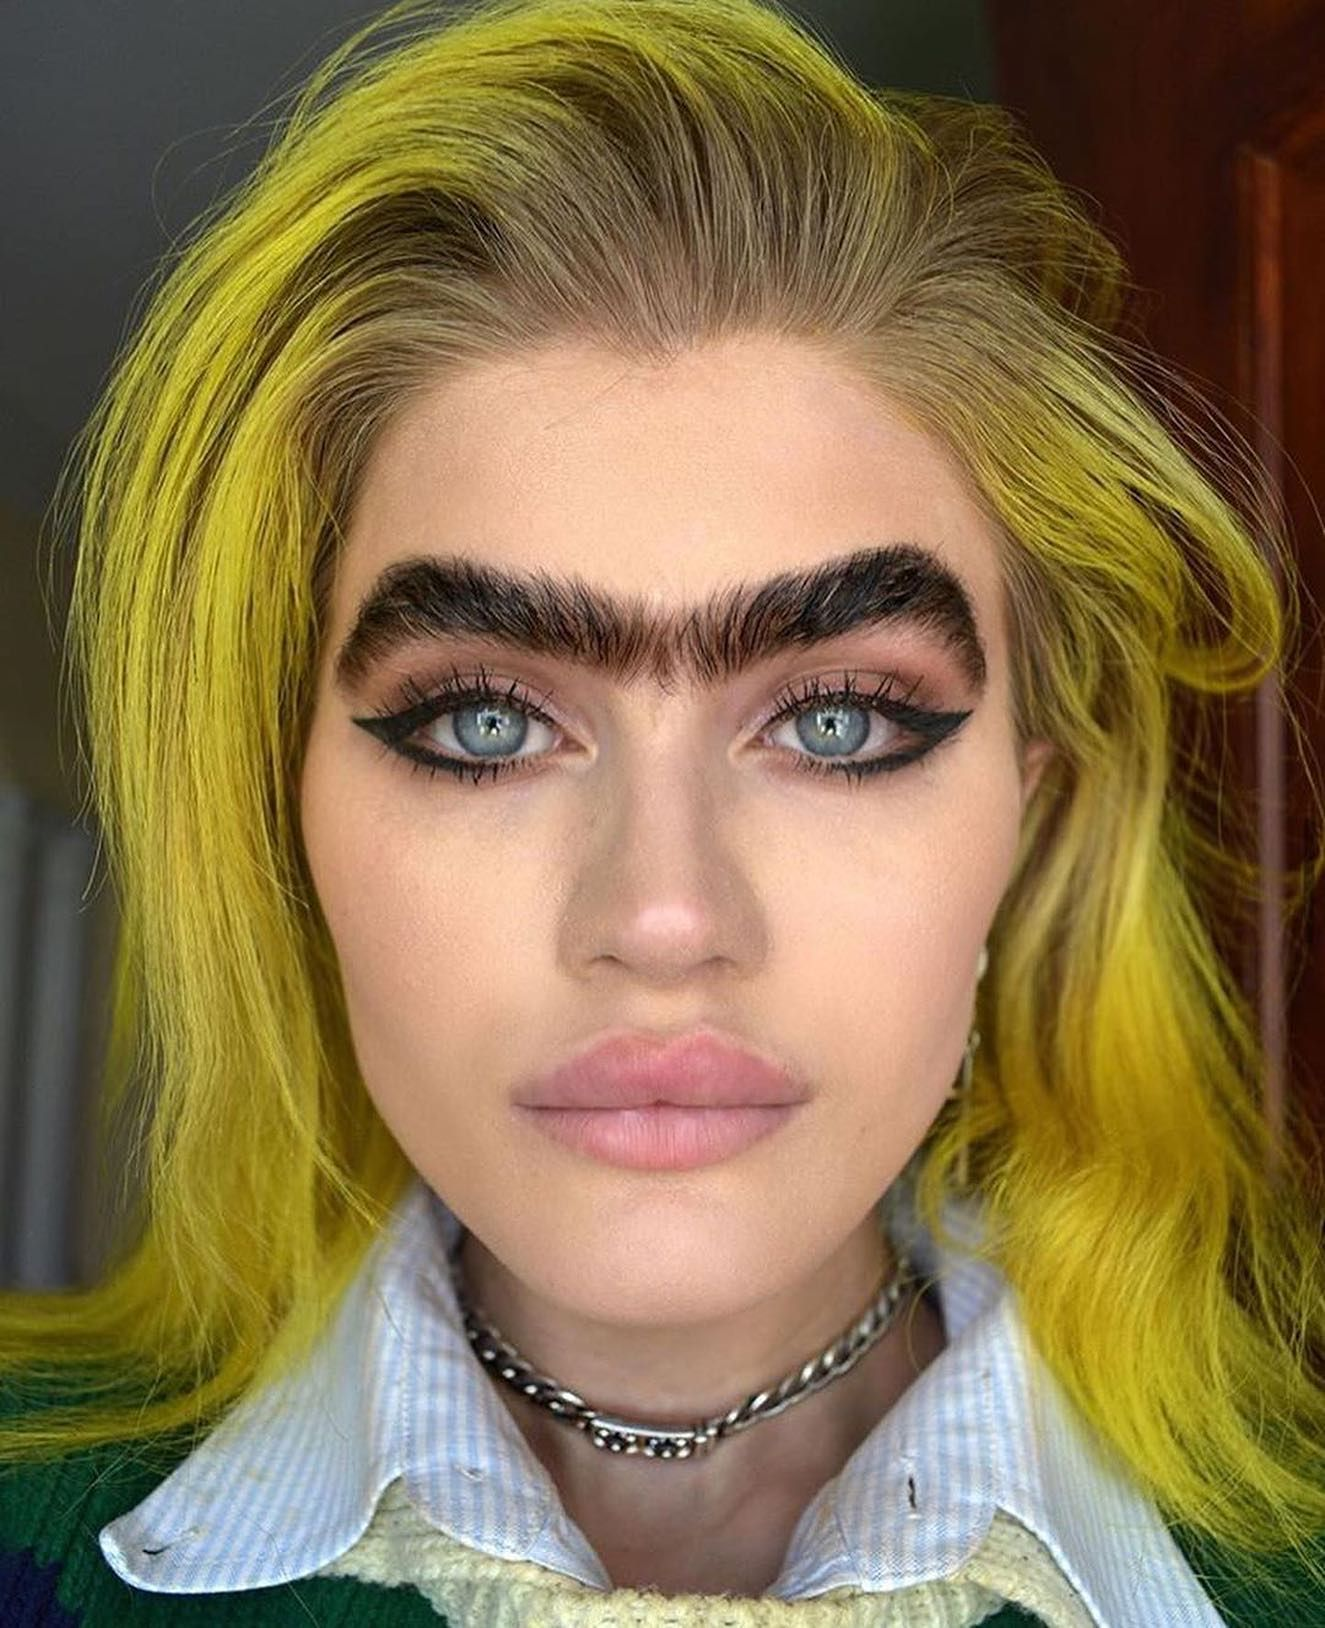 Thick Black Eyebrows Meme